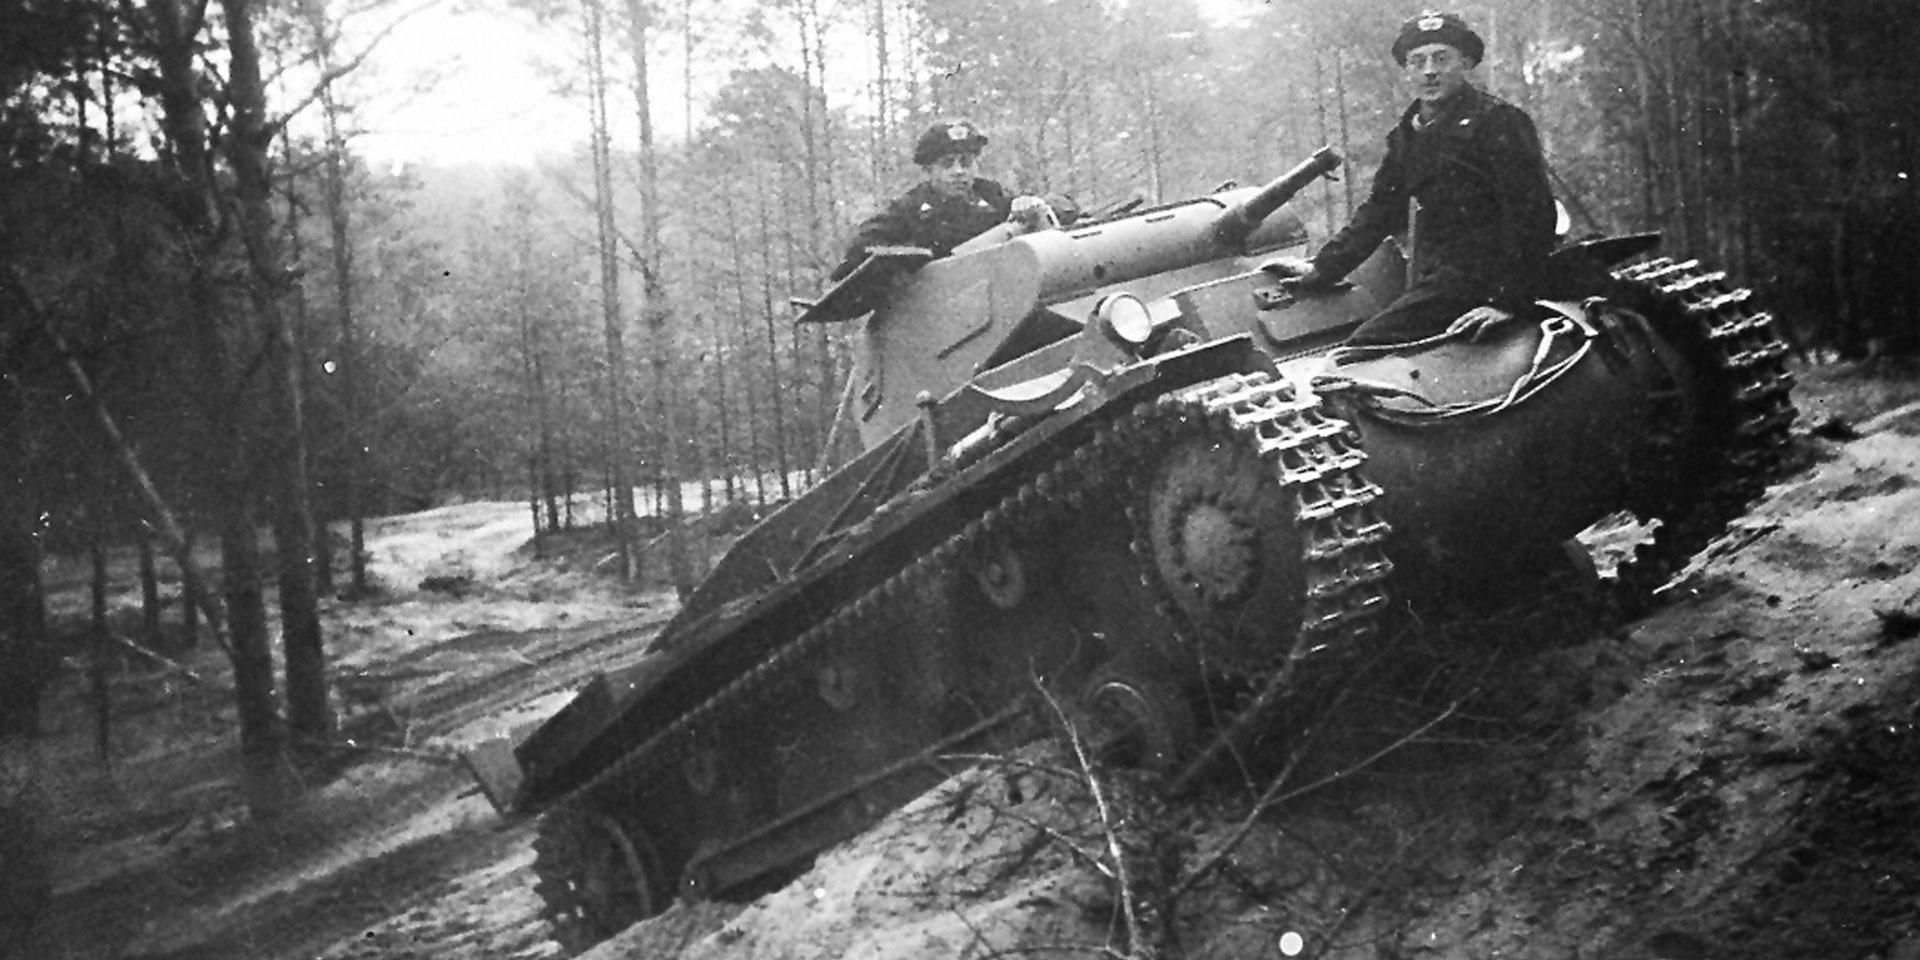 A Panzer II during a pre-war exercise, 1938